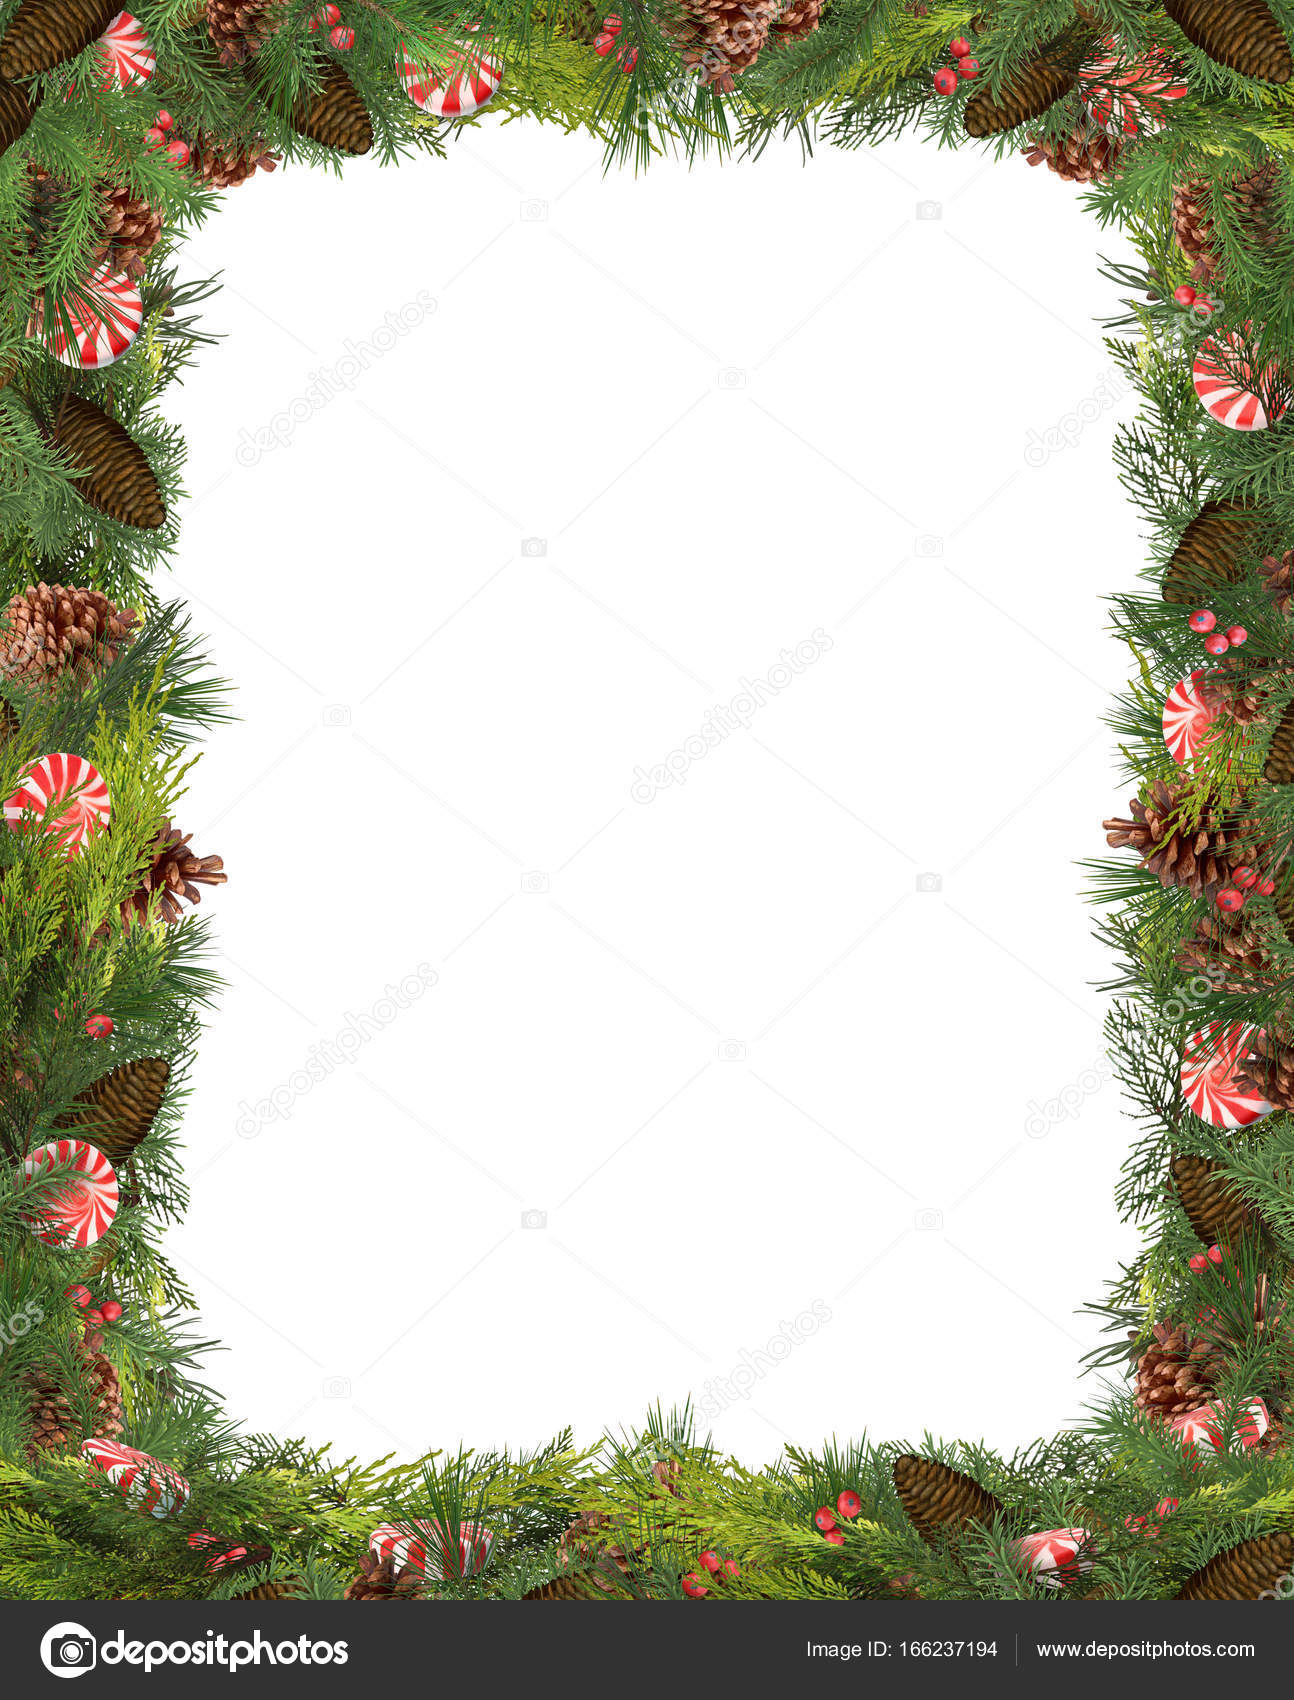 Christmas frame photo